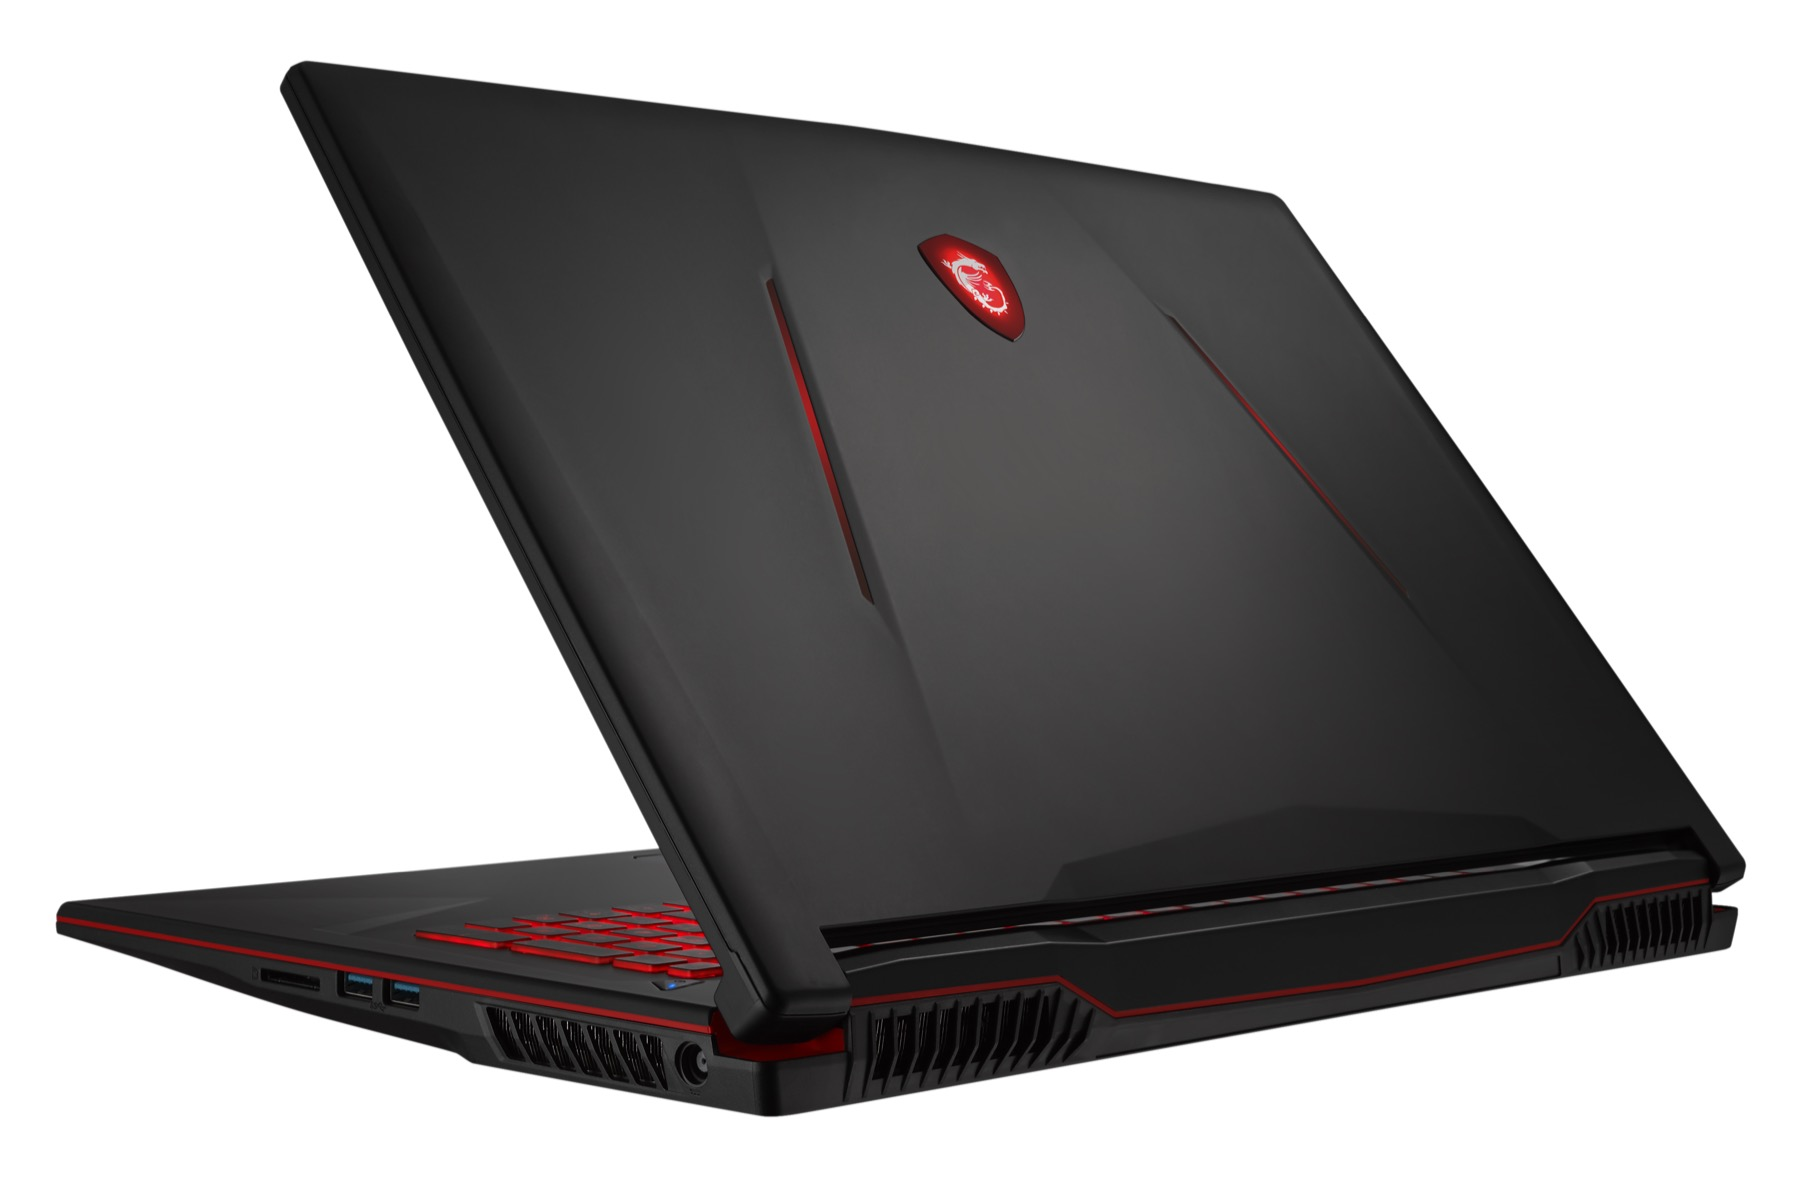 The MSI GL7363 budget gaming laptops are powered by the